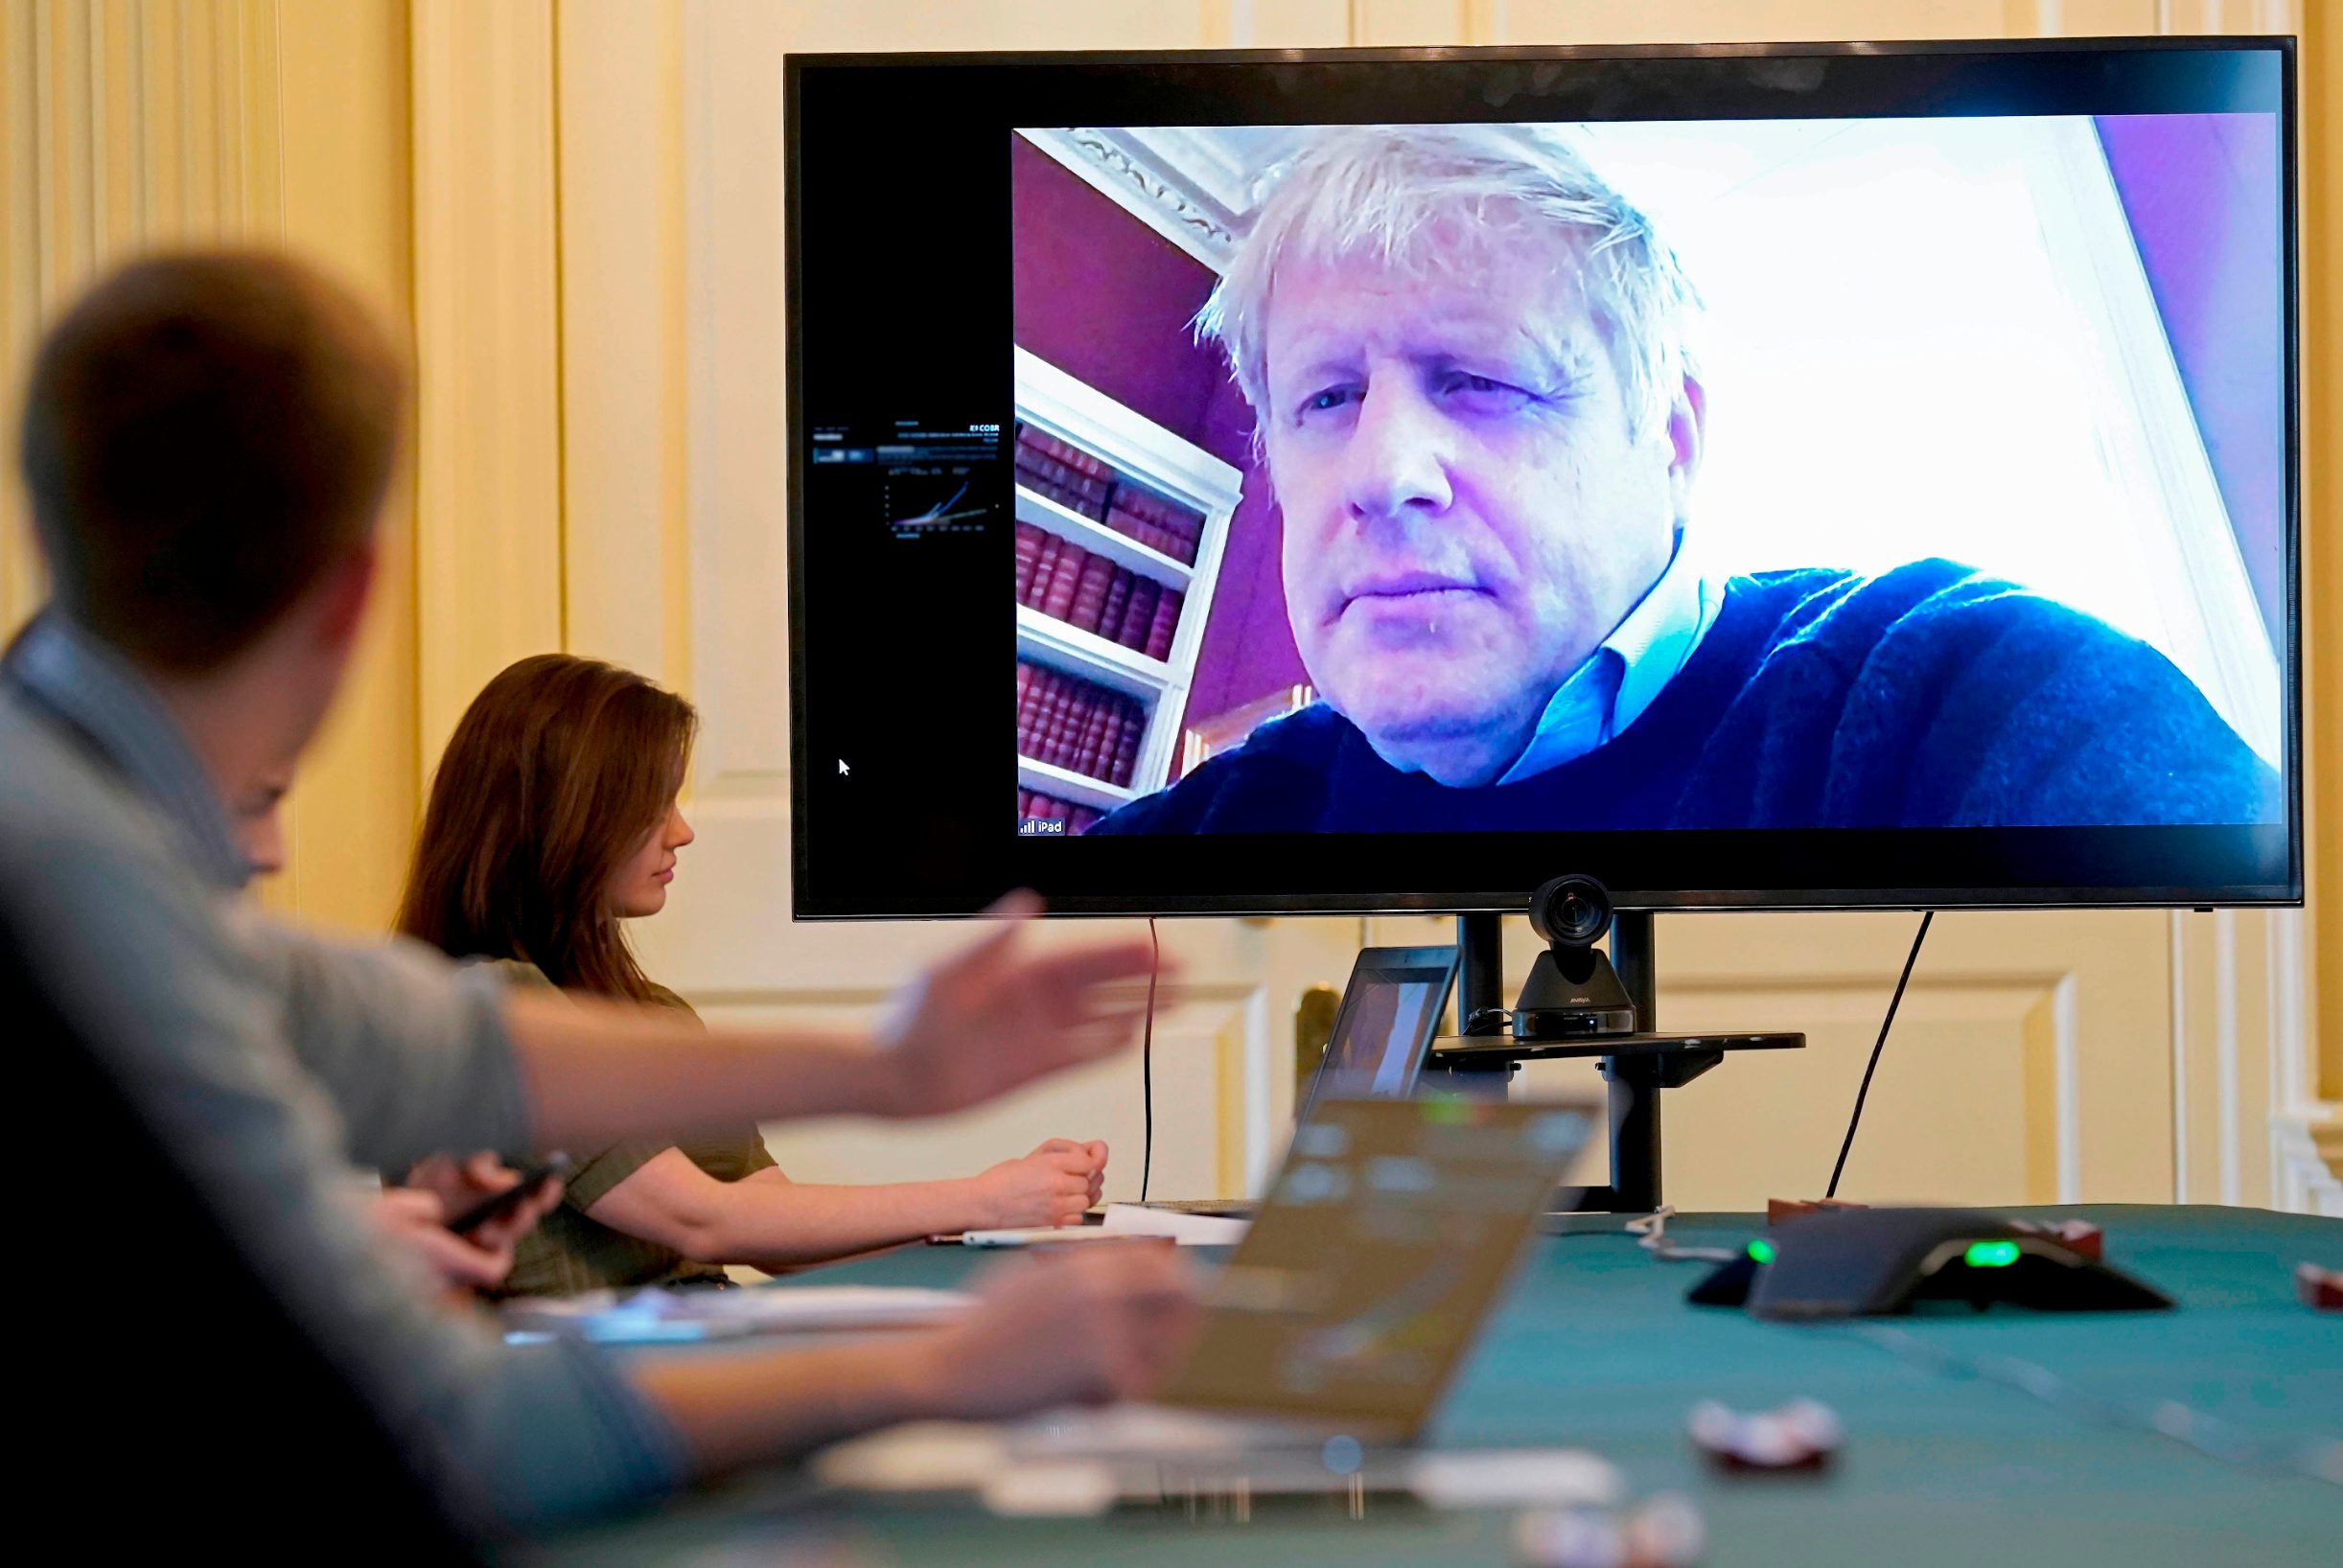 A handout picture released by 10 Downing Street, the office of the British prime minister on March 28, 2020, shows an image of Britain's Prime Minister Boris Johnson on a screen as he remotely chairs the morning novel coronavirus Covid-19 meeting by video link, in Downing Street in central London. - The two men leading Britain's fight against the coronavirus -- Prime Minister Boris Johnson and his Health Secretary Matt Hancock -- both announced Friday they had tested positive for COVID-19, as infection rates accelerated and daily death rate rose sharply. (Photo by - / 10 Downing Street / AFP) / RESTRICTED TO EDITORIAL USE - MANDATORY CREDIT